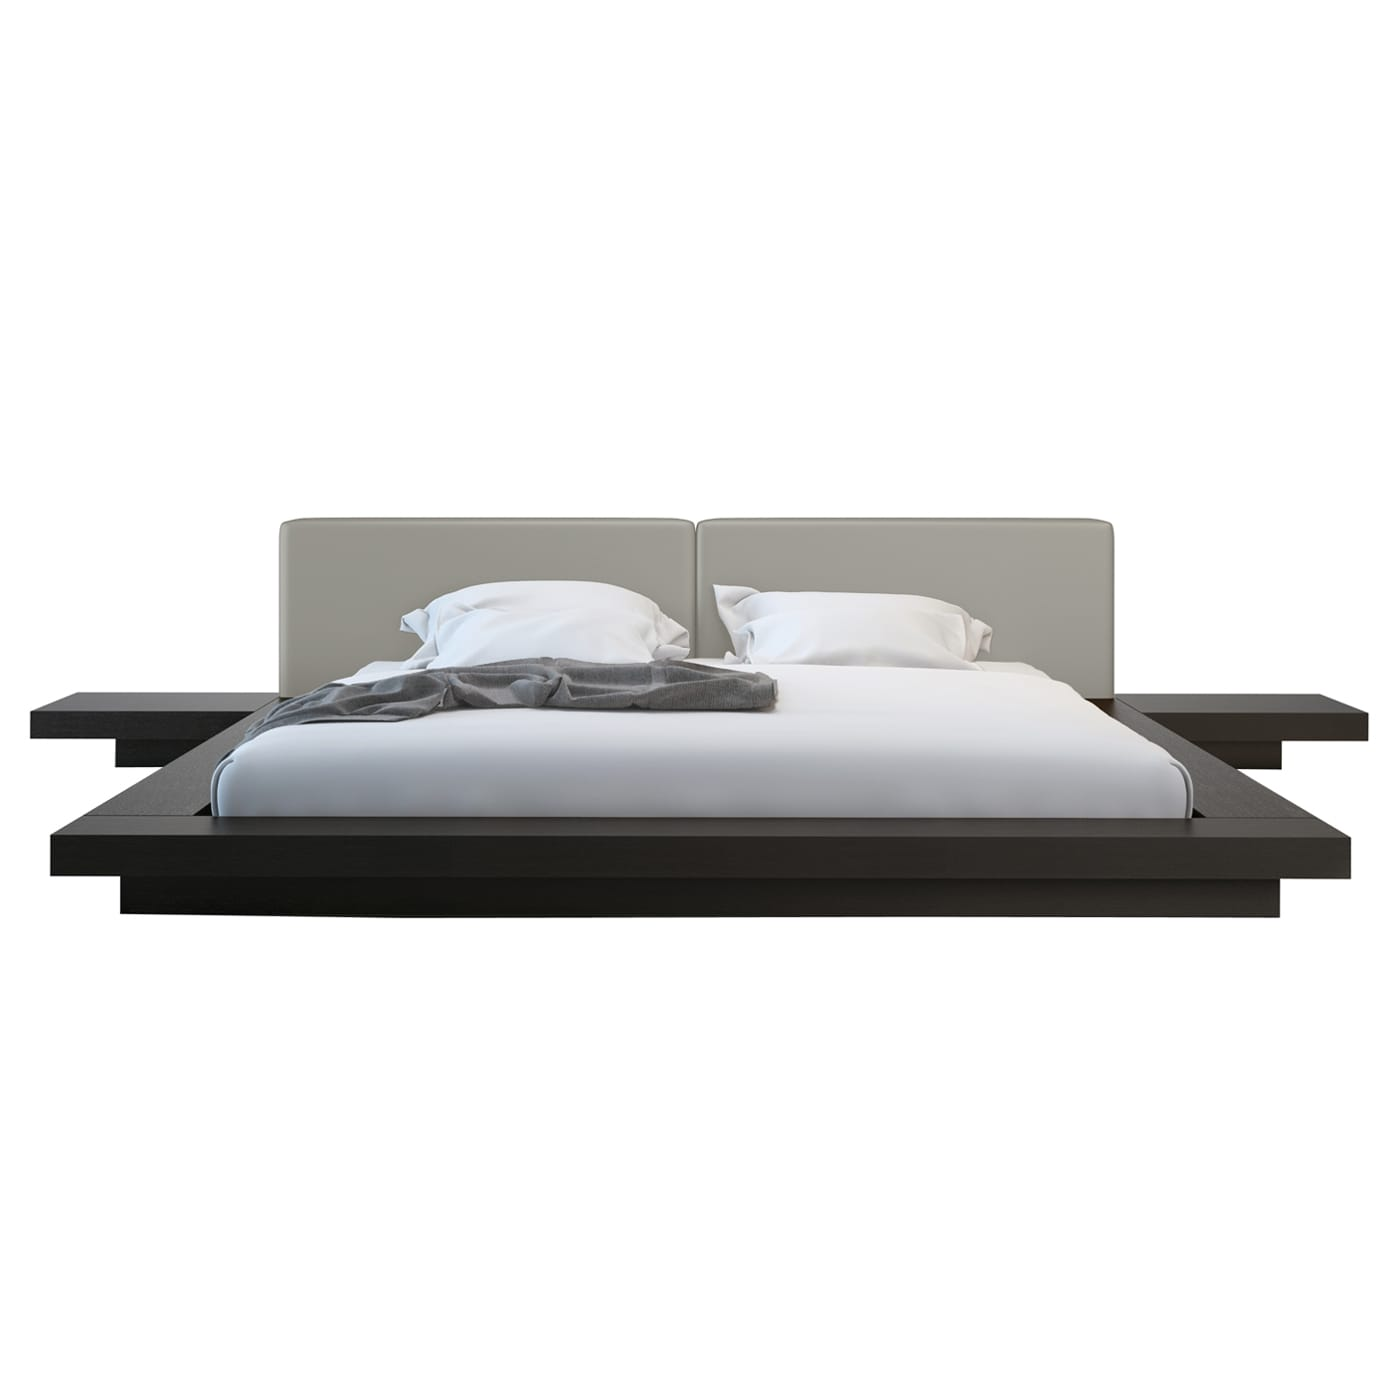 Modloft Furniture HB39A Worth Bed